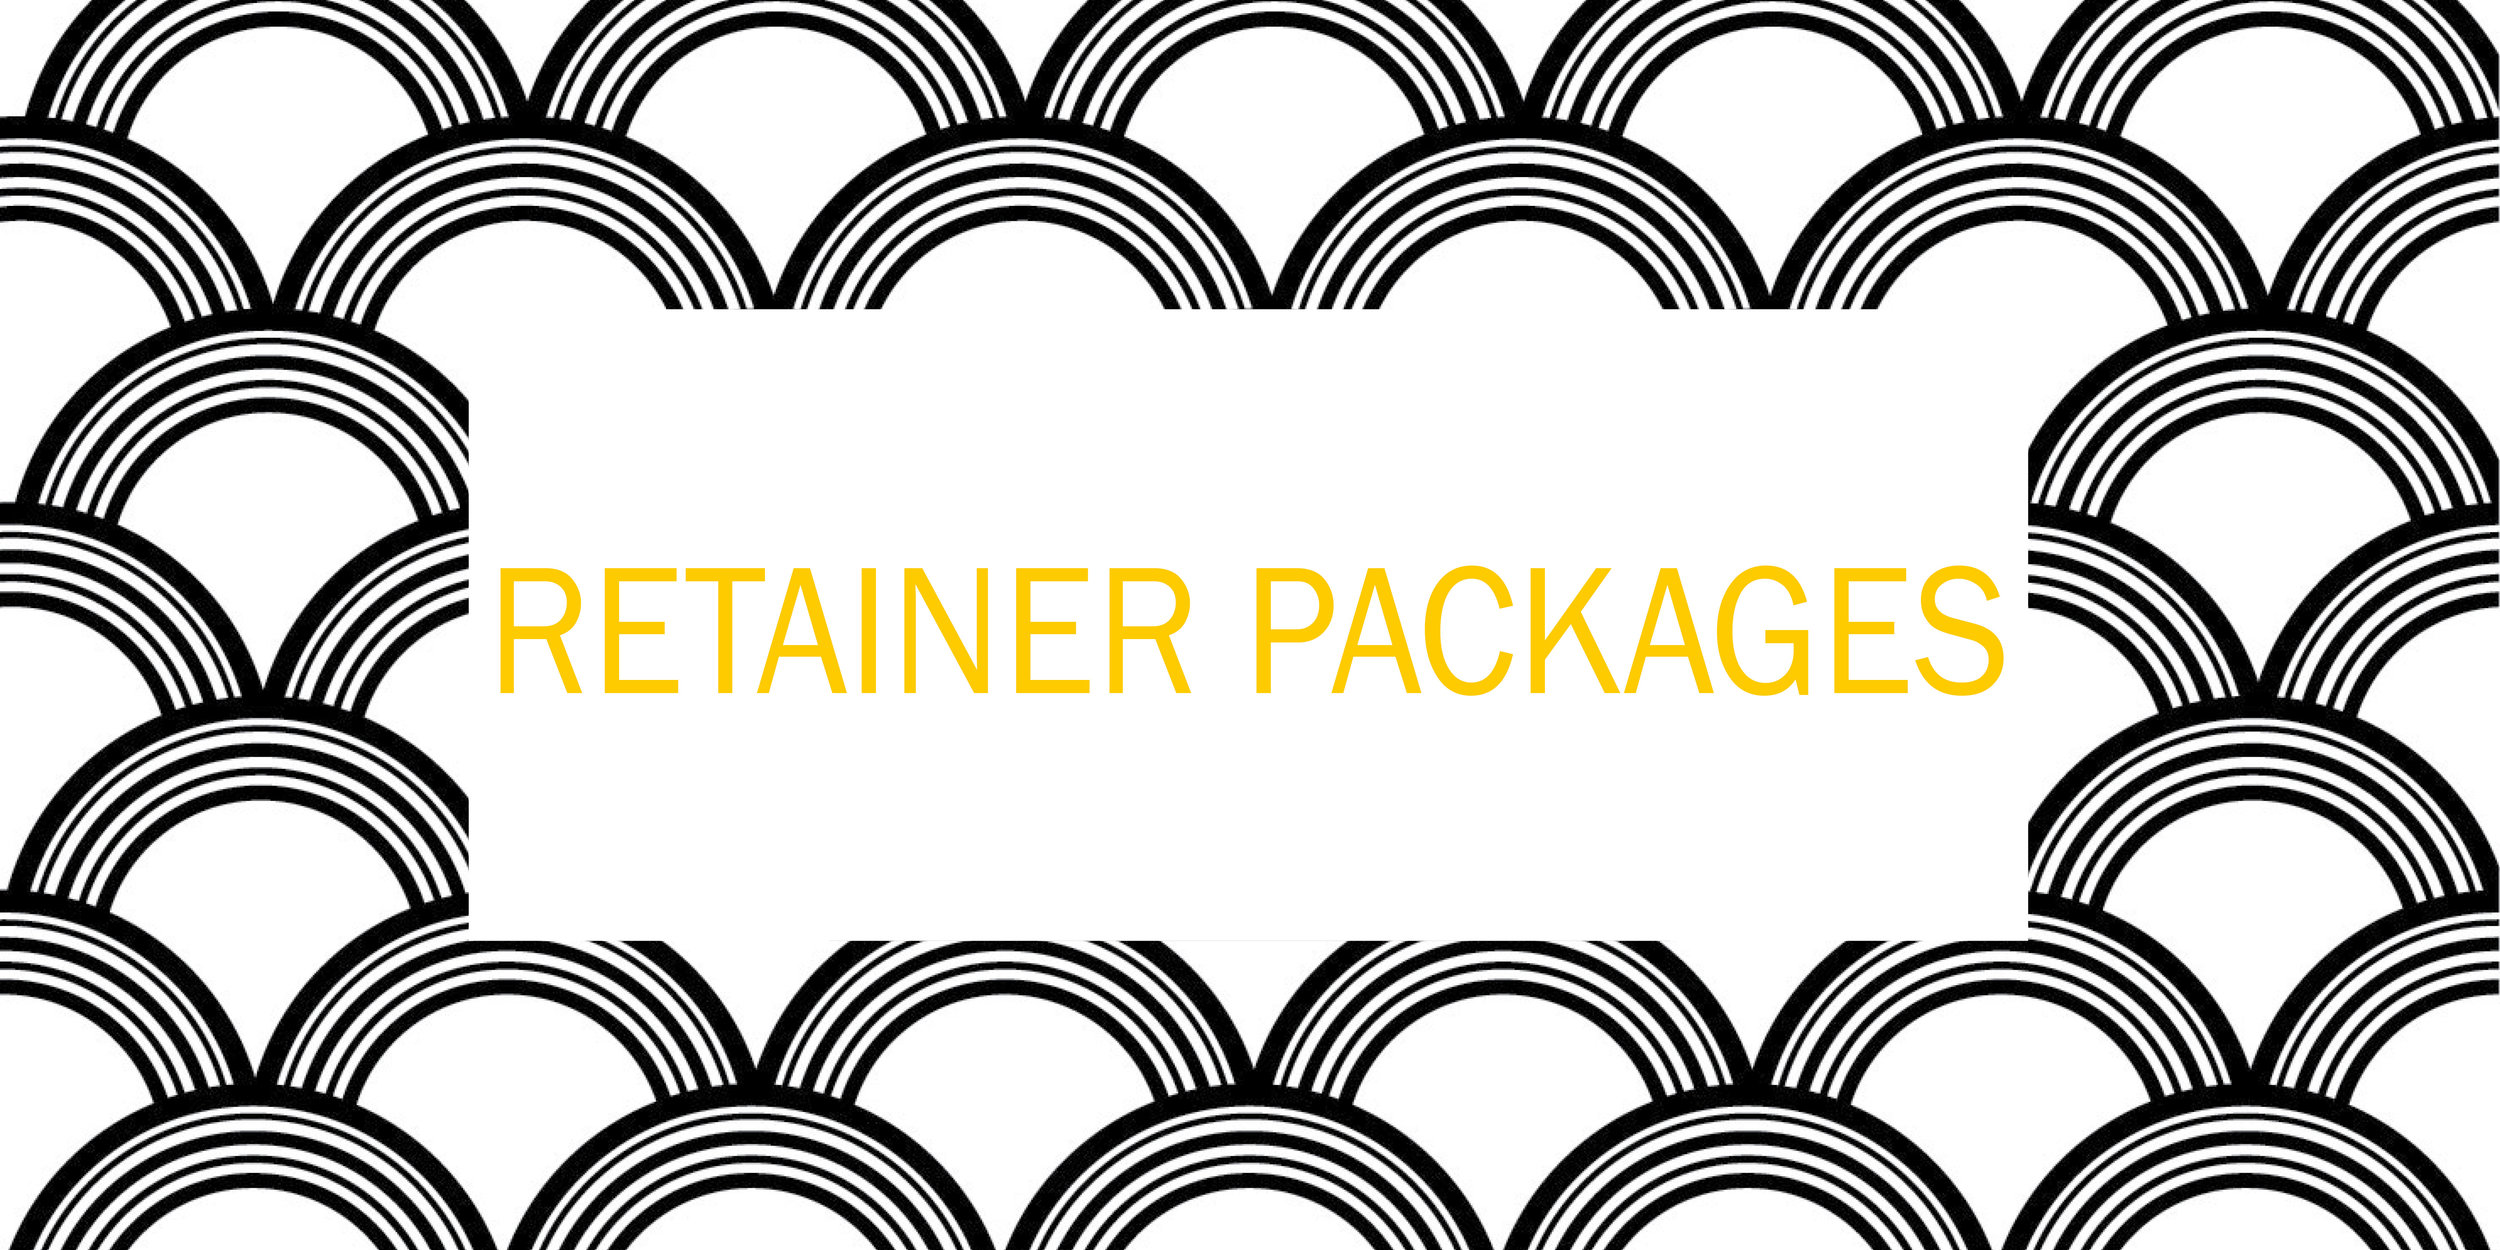 NON-SOCIAL MEDIA RETAINER PACKAGES - R600.00 per hour for 11-20 hours inclusiveR550.00 per hour - 21-40 hours inclusiveR400.00 per hour for 41 hours and aboveProject and Event Management, Writing and Editing, Content Creation, Political Consulting, Speech Writing, Media Liaison, Communications.